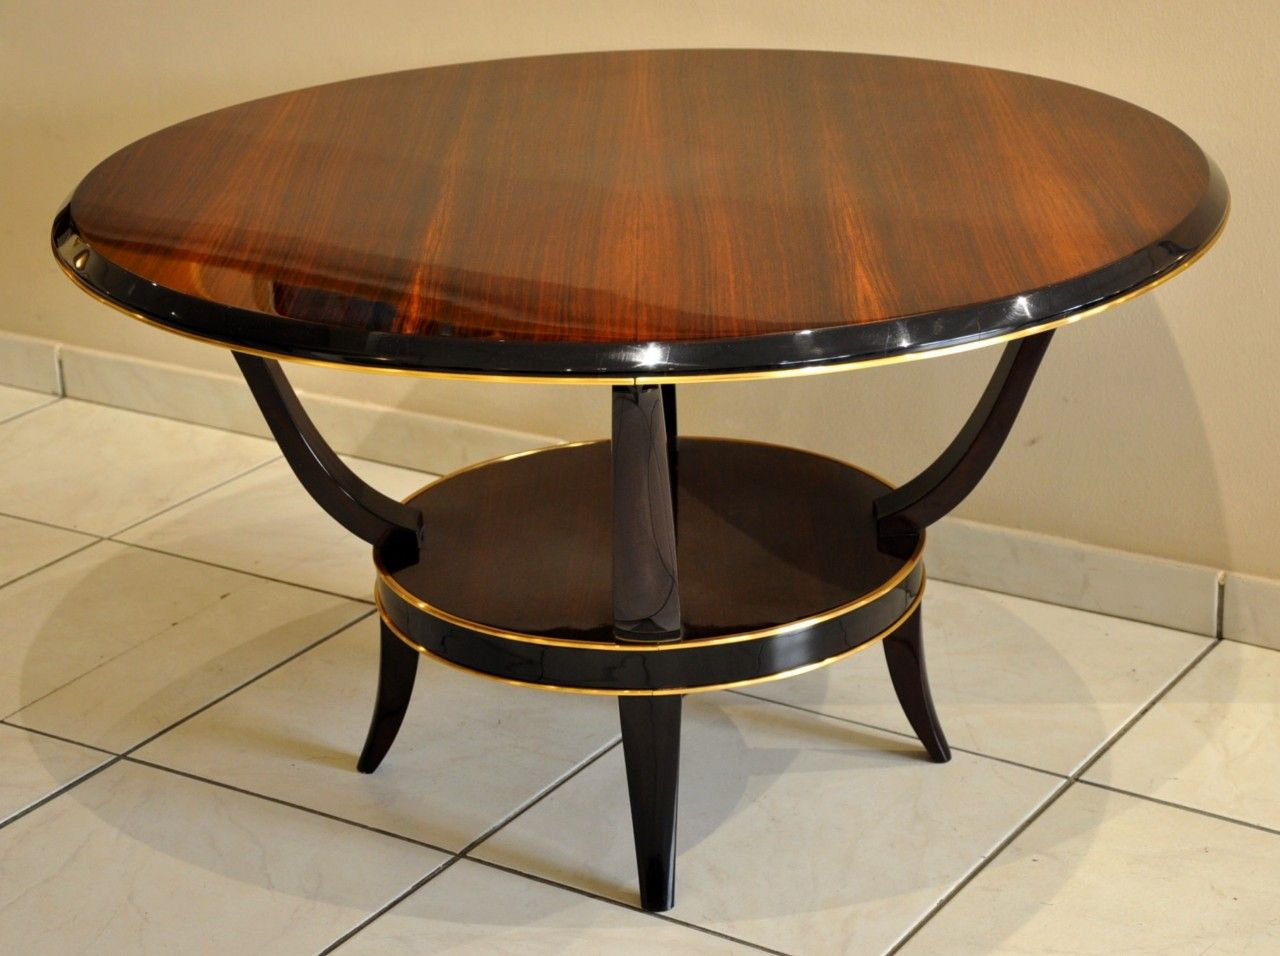 Rosewood Coffee Table By Ren Prou 1930s For Sale At Pamono